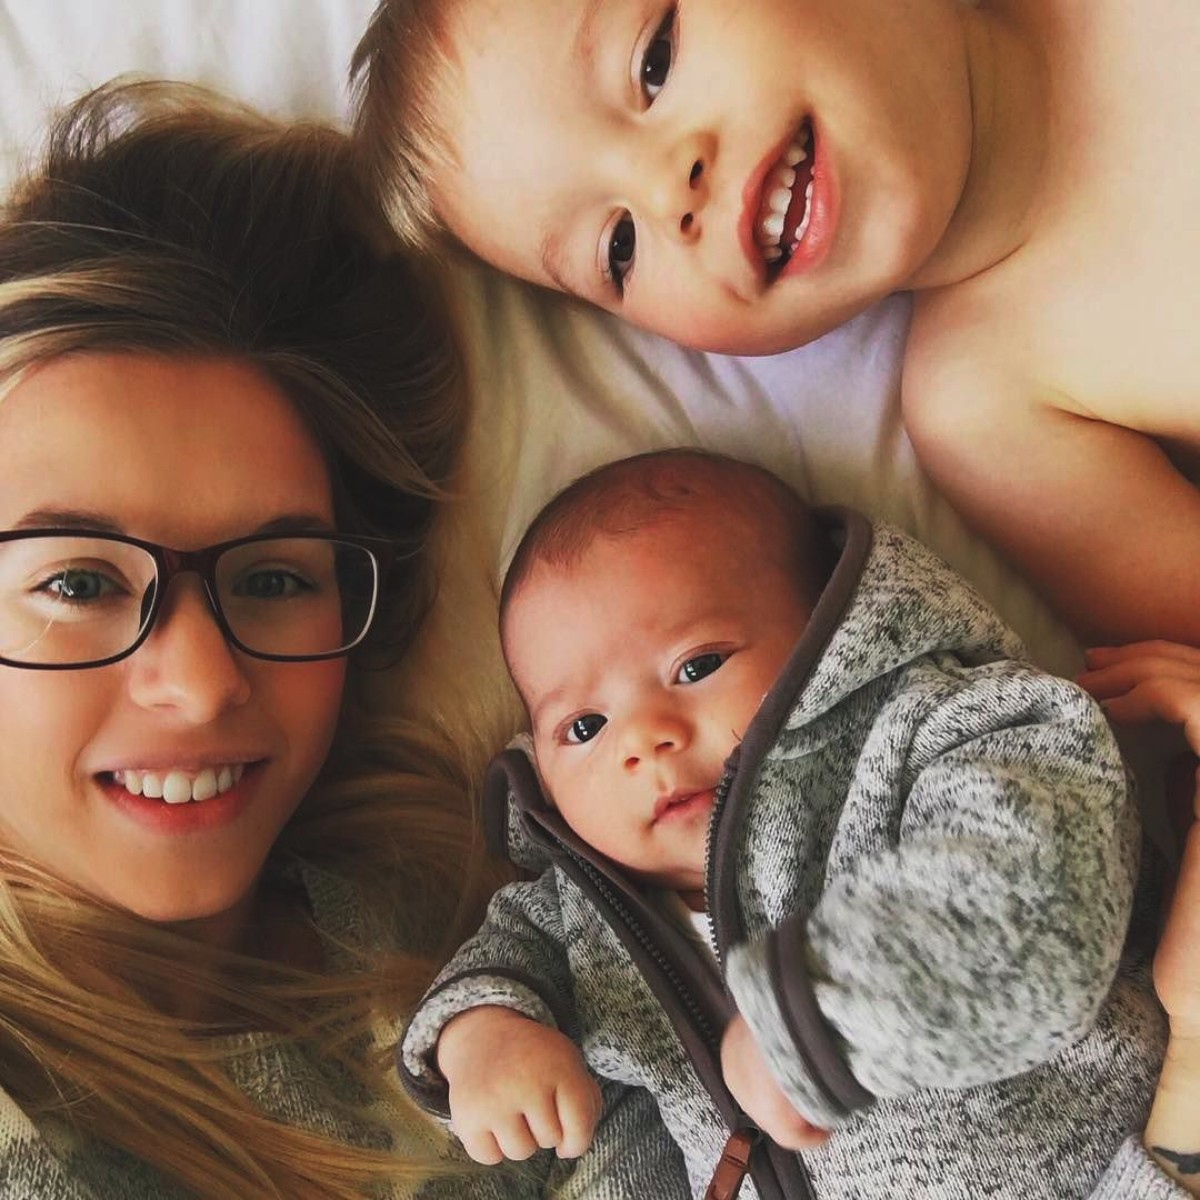 Our month in insta-snaps; October 2016 - Selfie of mother and her two sons, baby and toddler